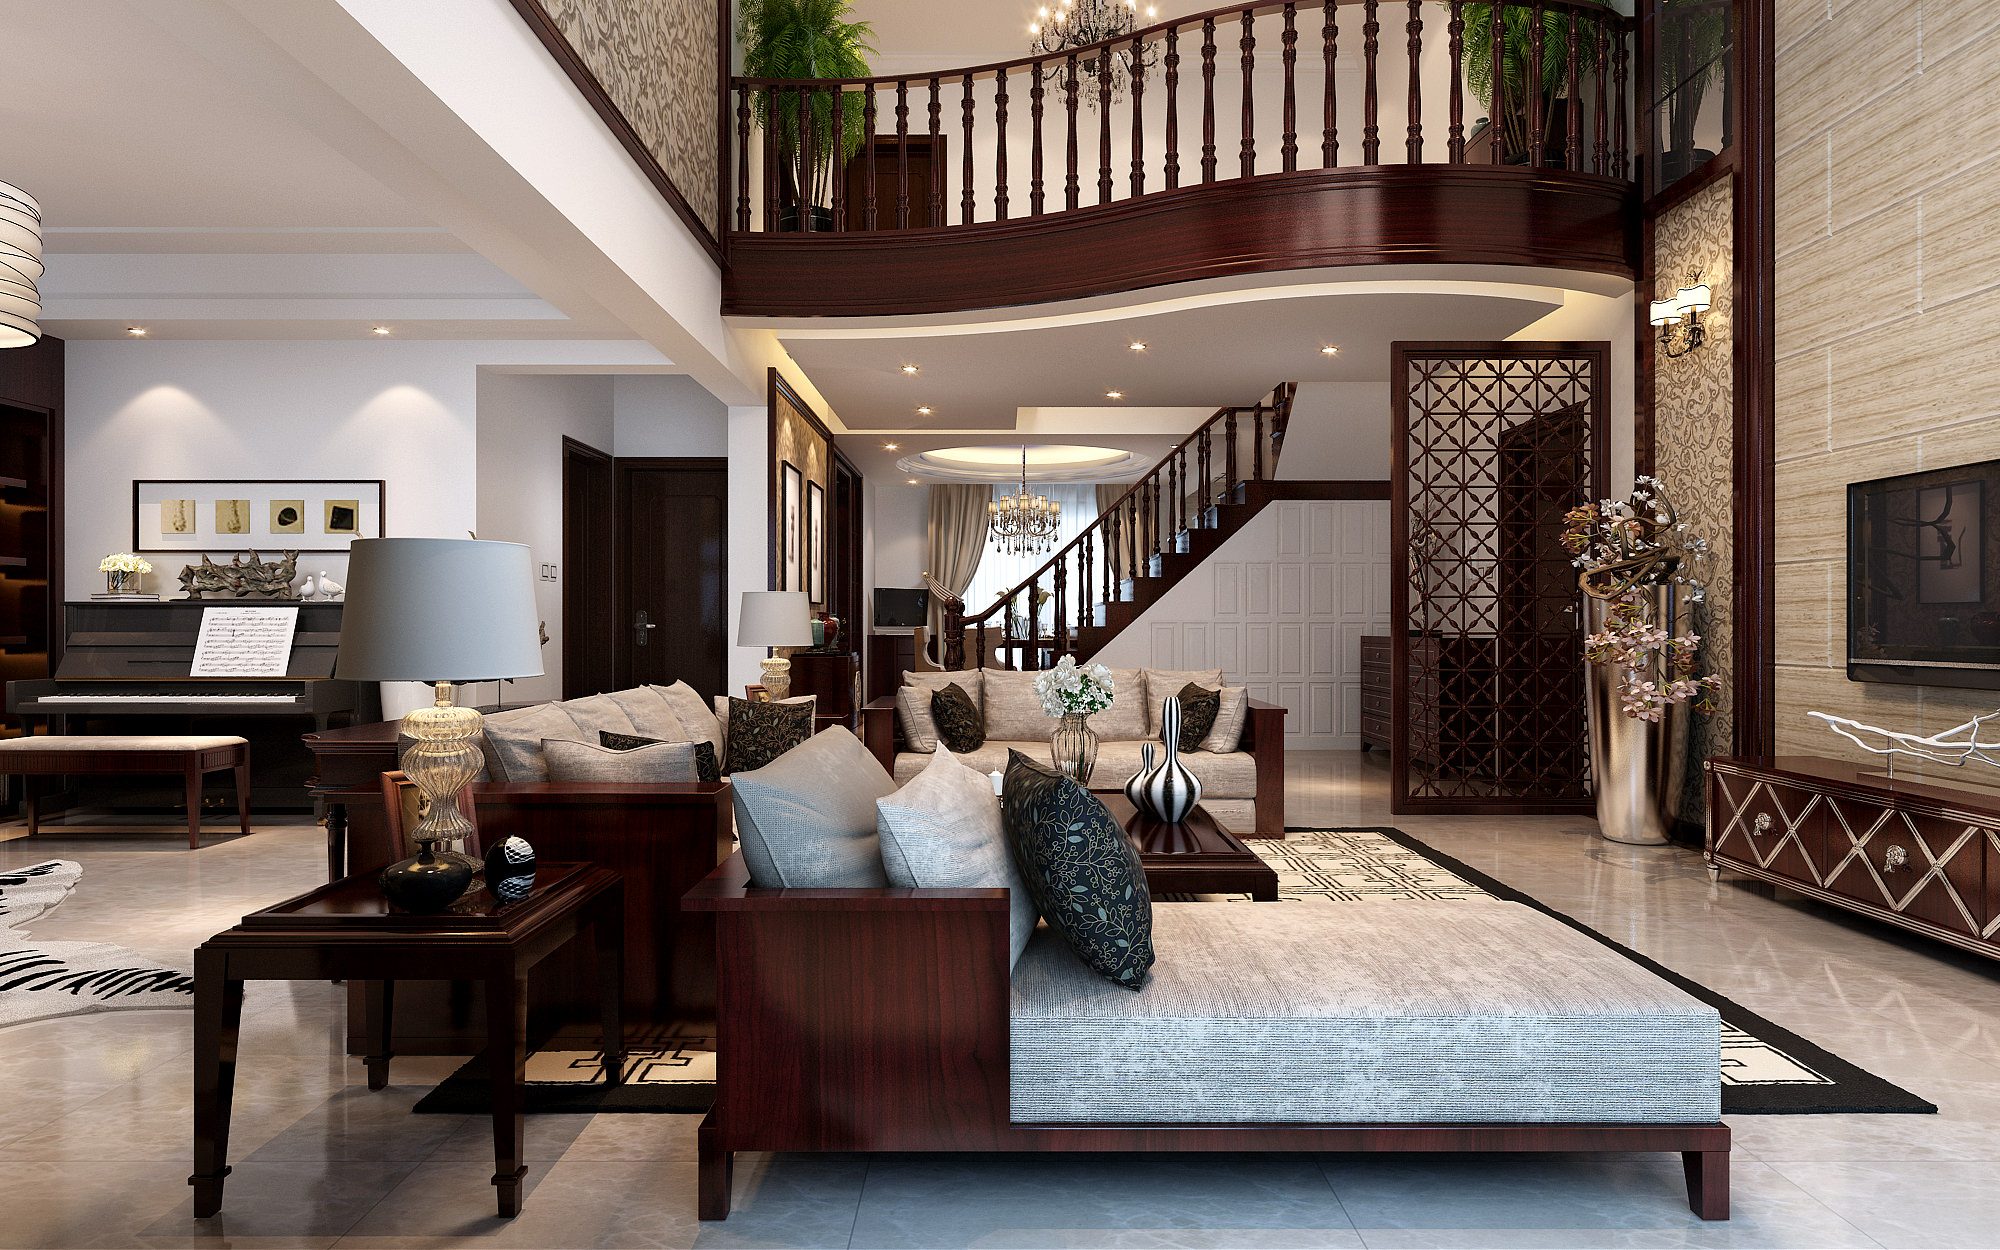 Modern Classy Living Room With Pianos And Stairs 3d Model Max 1